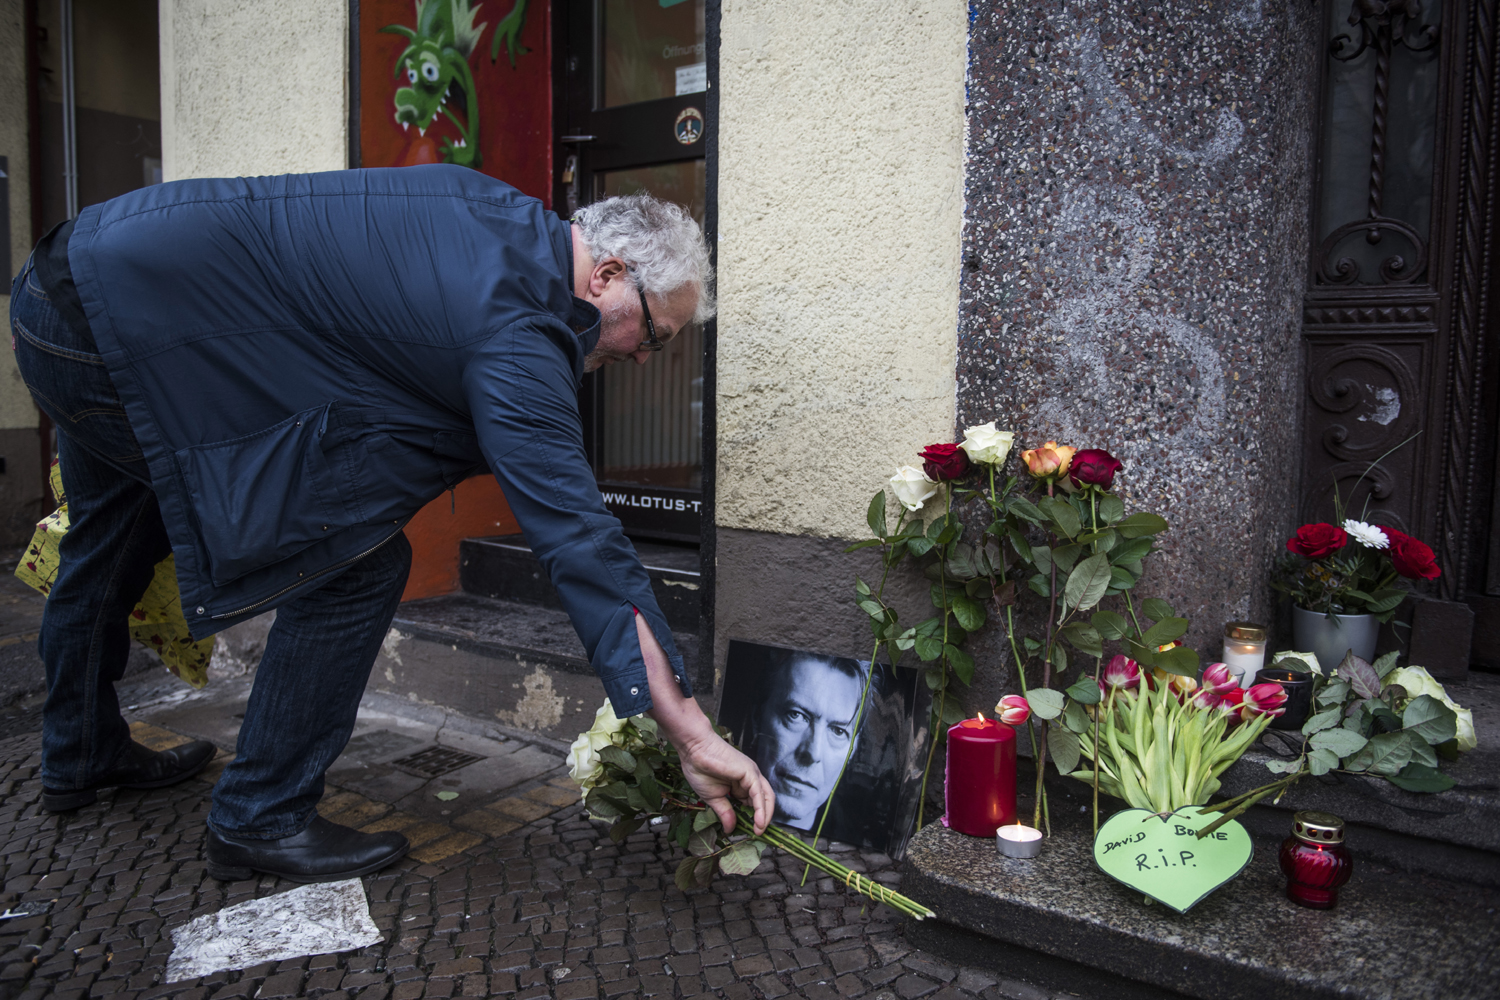 David-Bowie-fan Dirk Turnage puts down a tribute to British rock legend David Bowie outside his former home in Berlin's Hauptstrasse 155 on January 11, 2016. British rock music legend David Bowie has died after a long battle with cancer, his official Twitter and Facebook accounts said. / AFP / ODD ANDERSEN